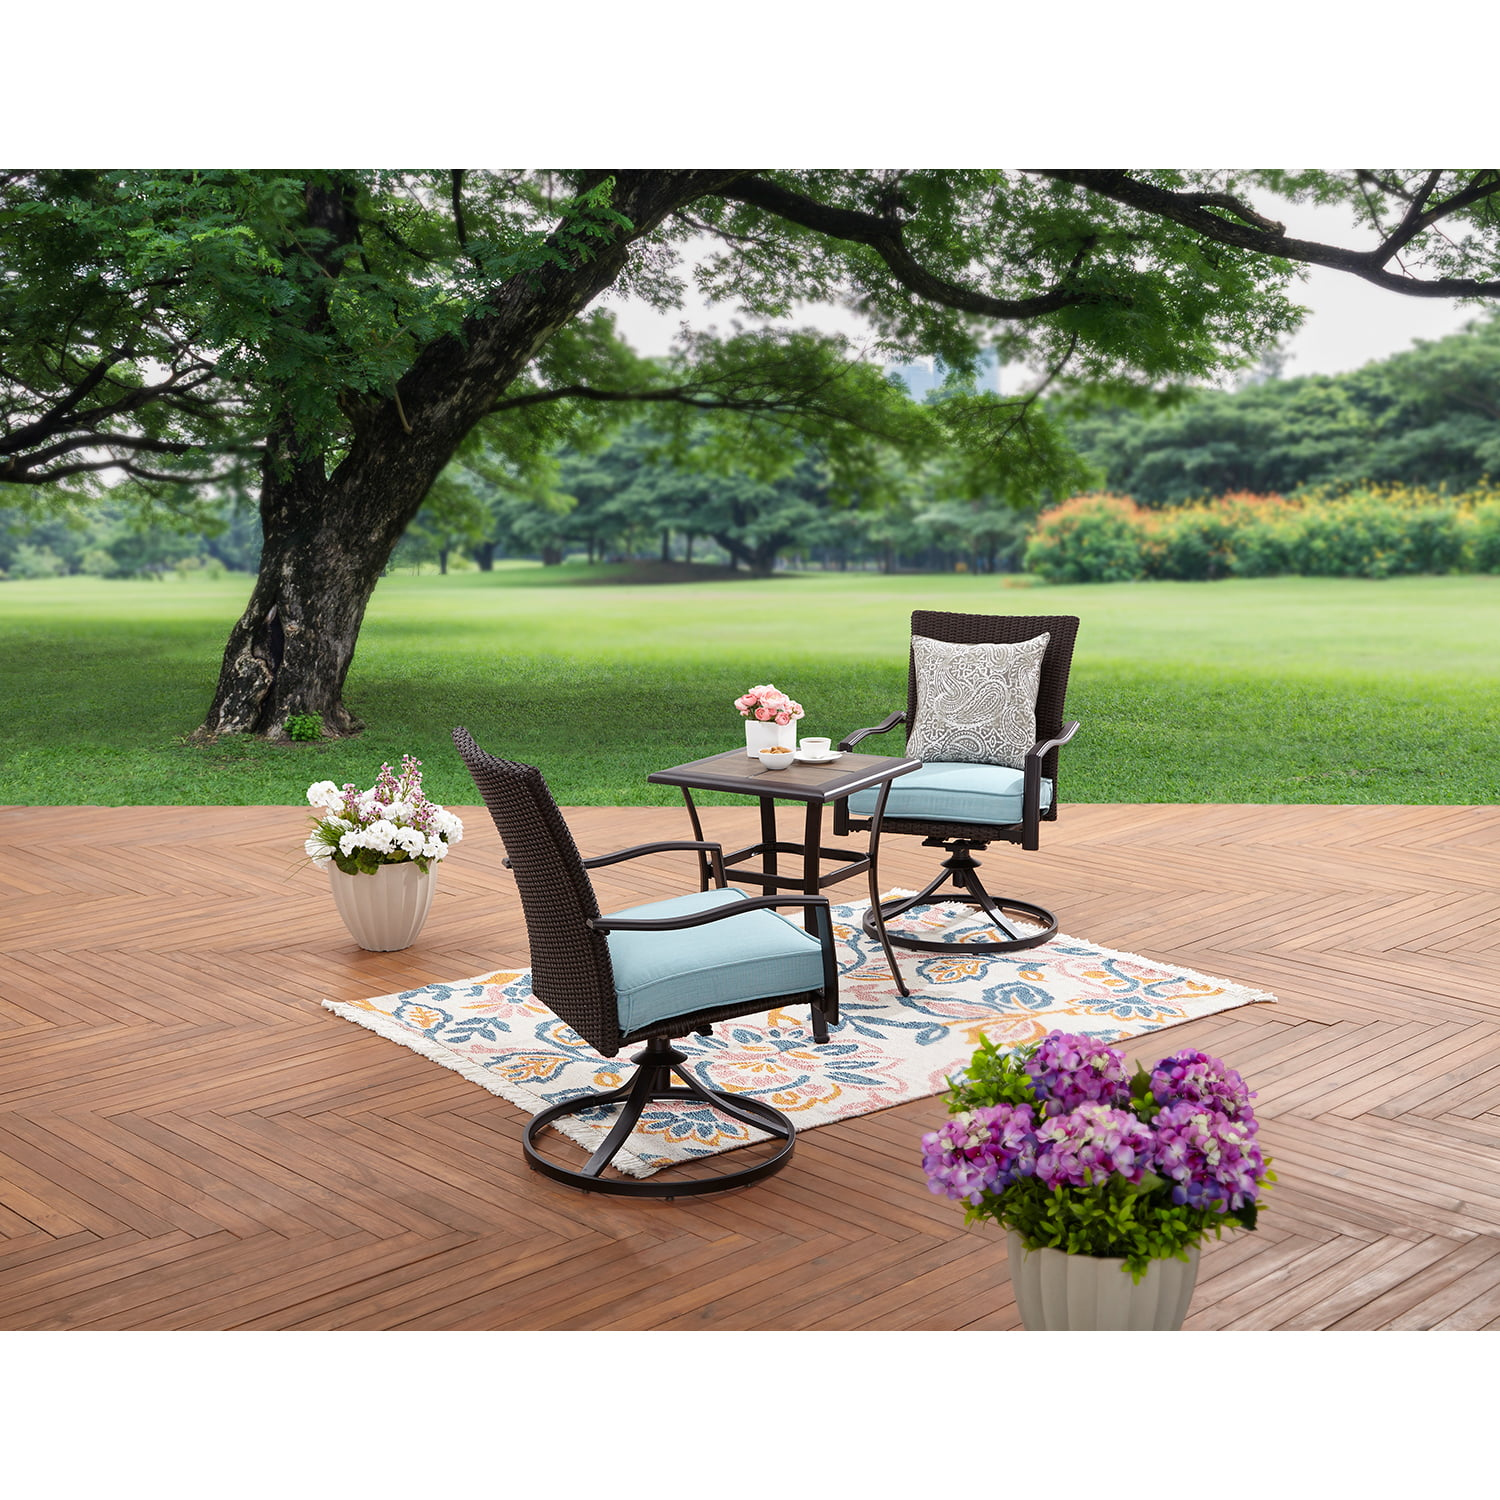 Better Homes and Garden Piper Ridge 3-Piece Wicker Bistro Set by Courtyard Creations Inc